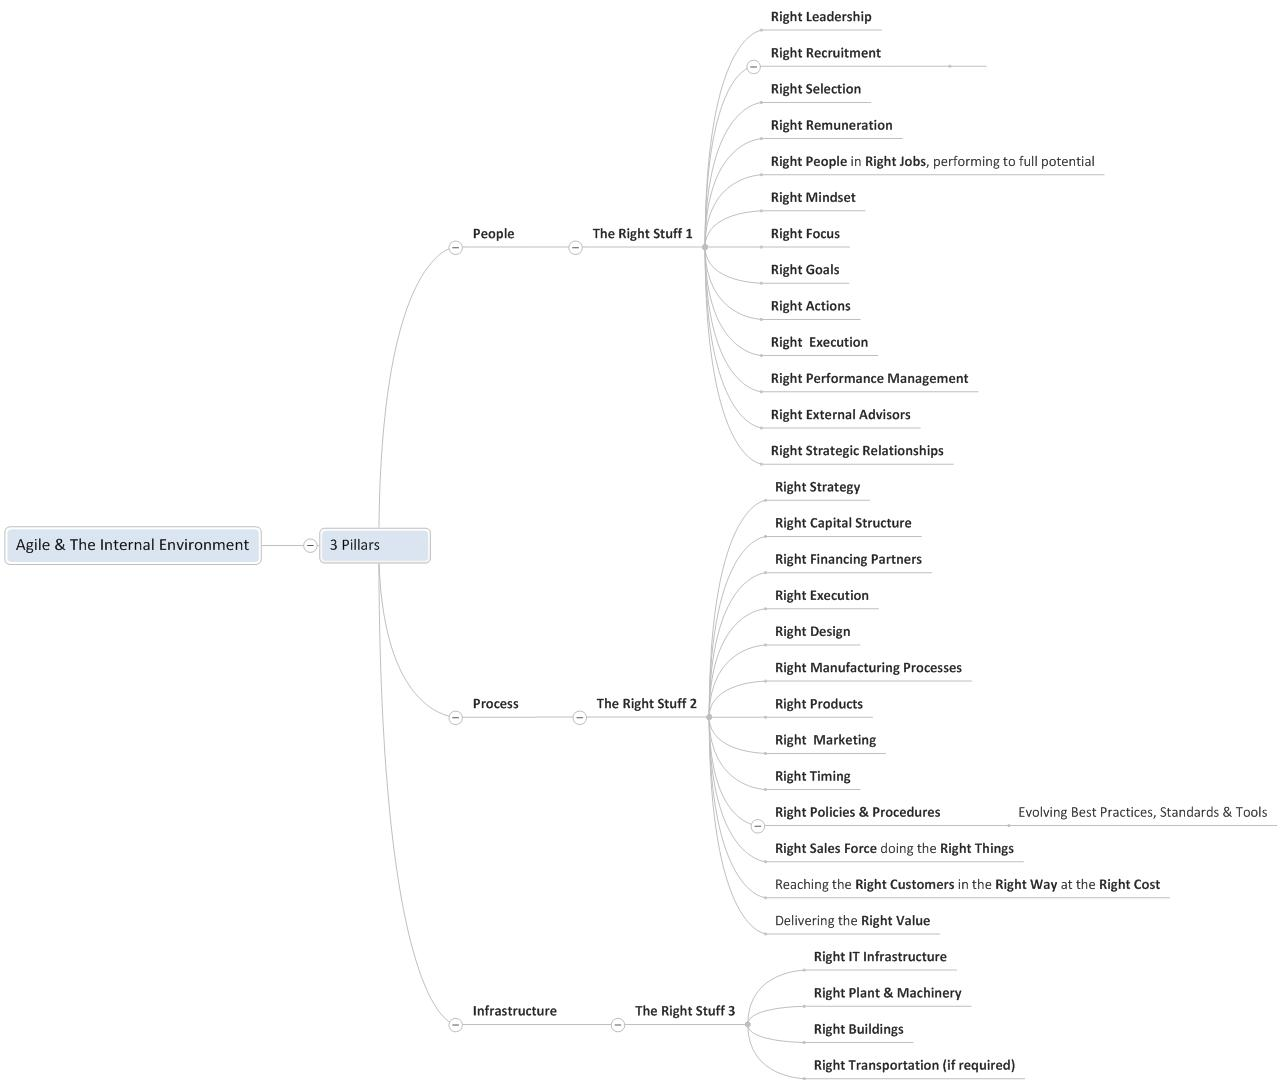 The Right Stuff MindMap